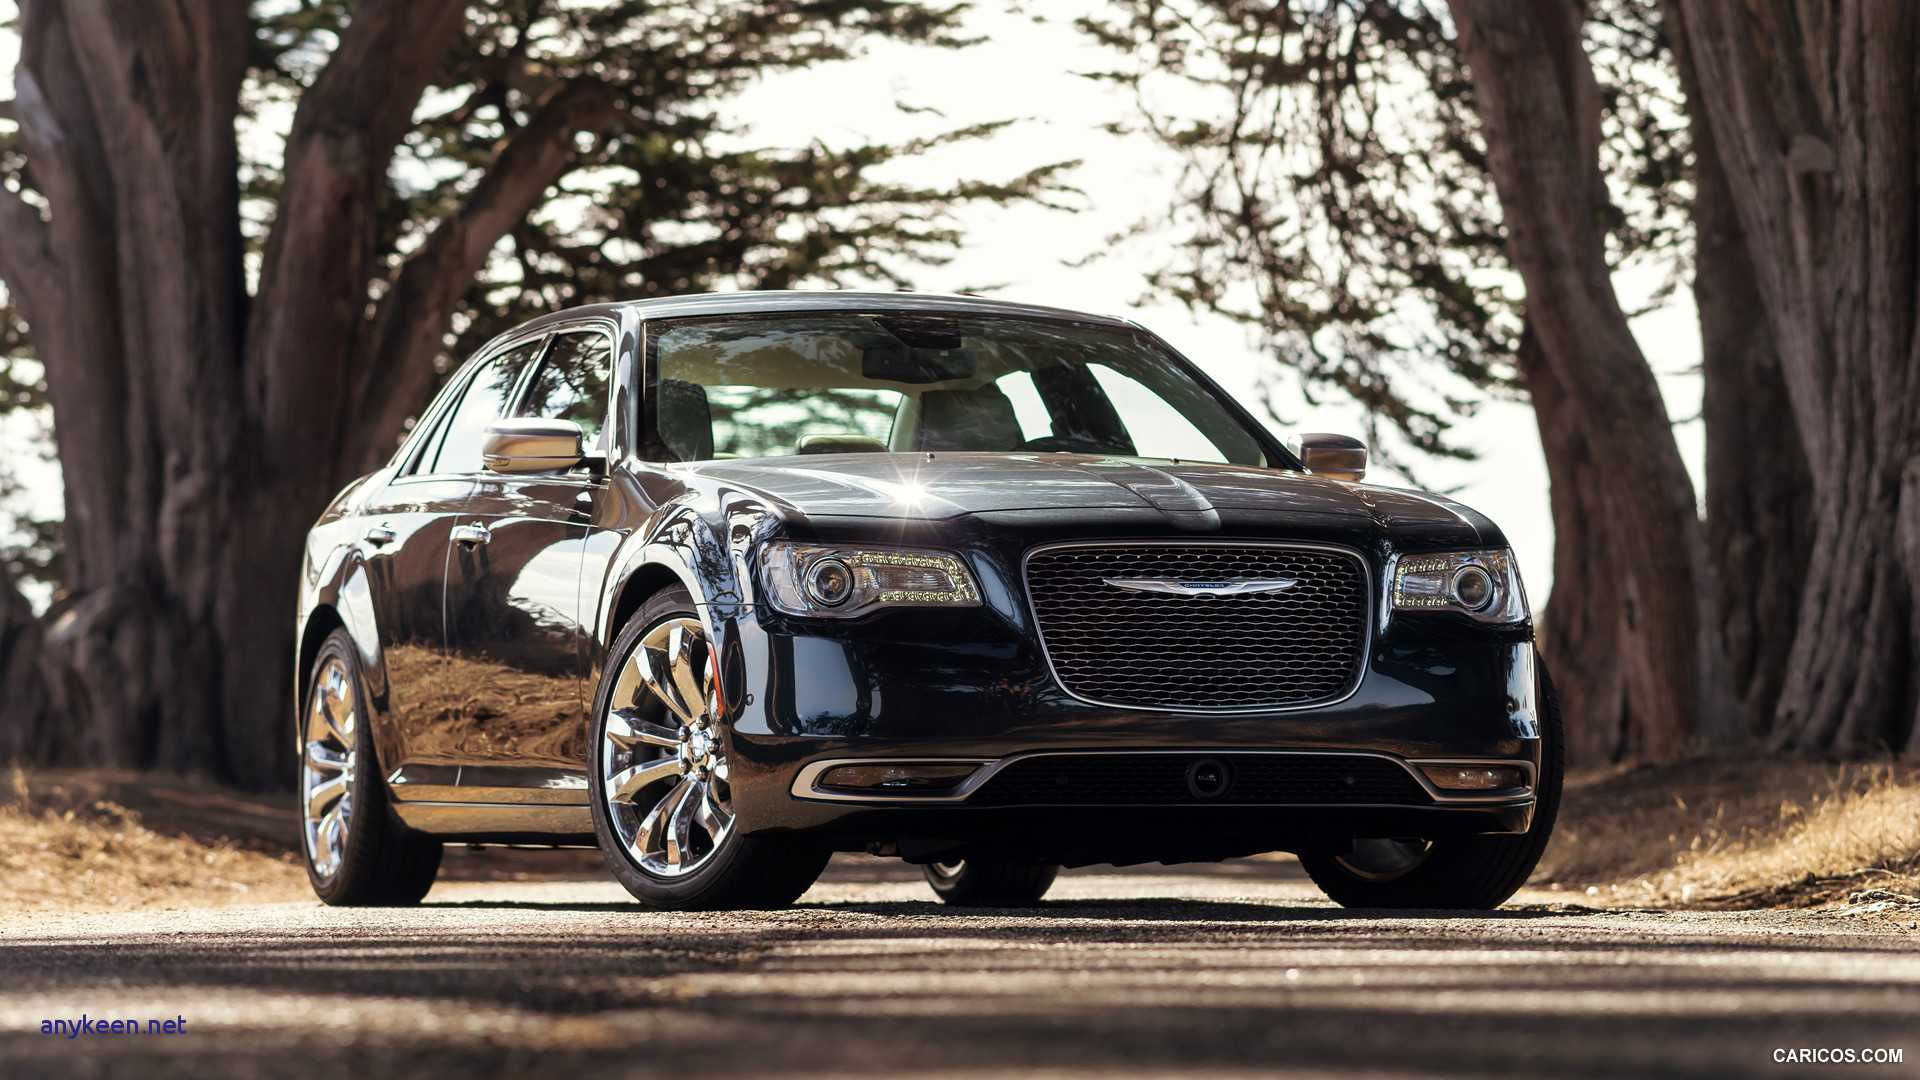 Chrysler 300 Wallpaper Collection 54 Unique Of Cars Hd Wallpapers ...